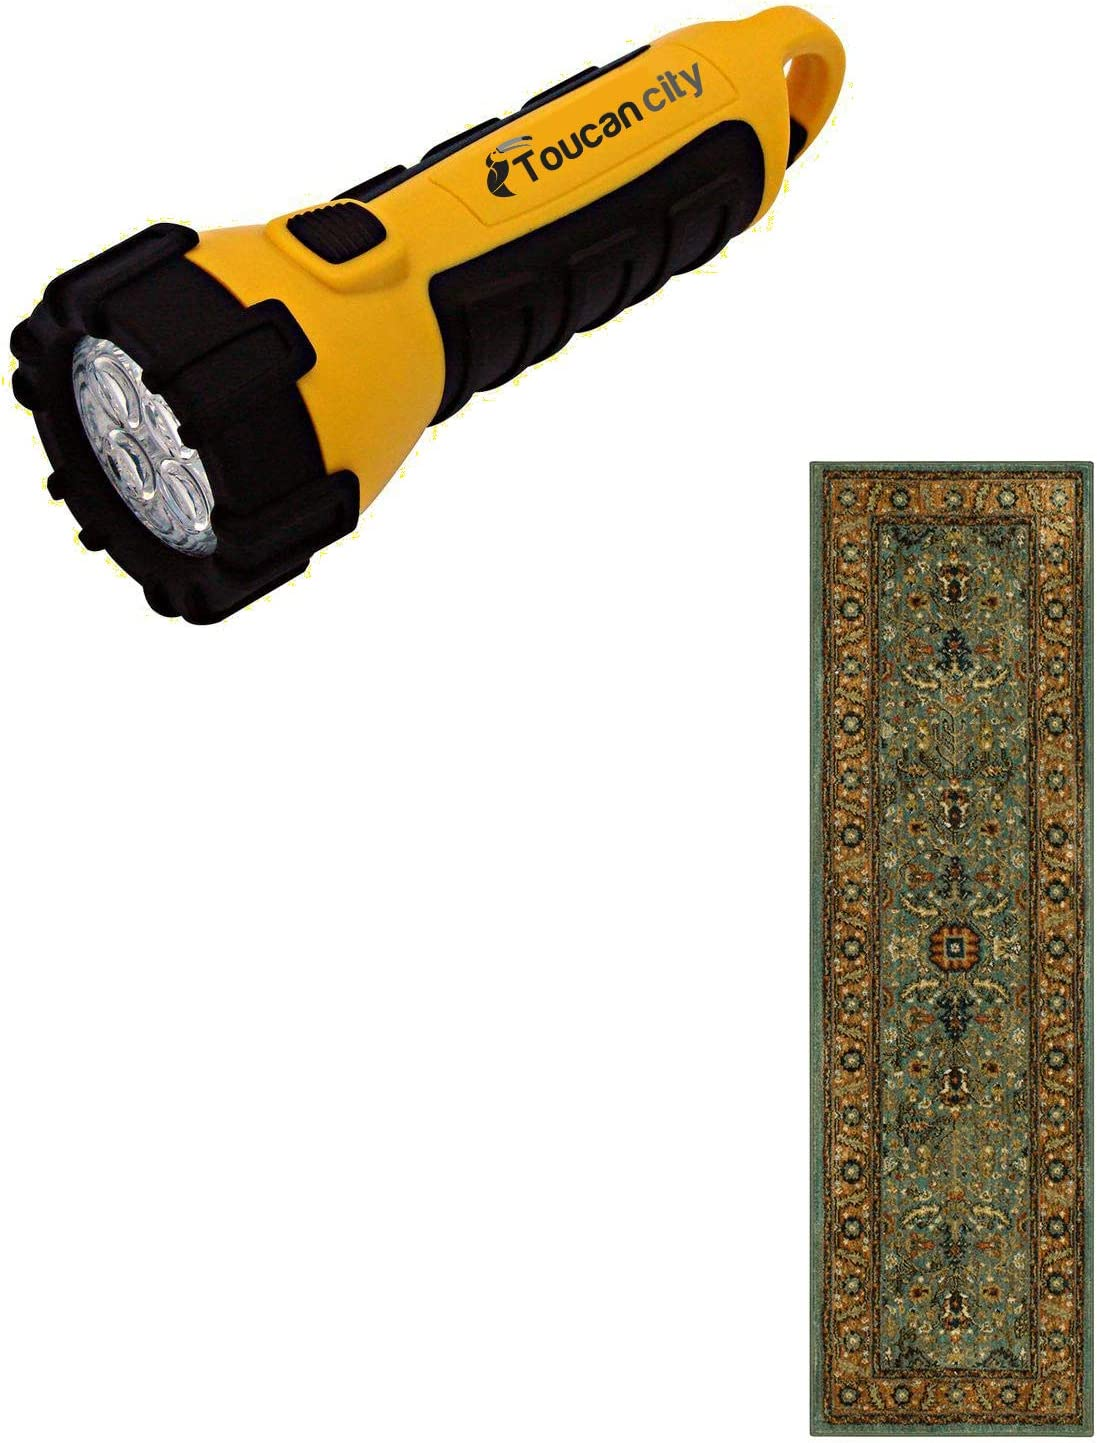 Toucan City LED Flashlight and Home Decorators Collection Mariah Aquamarine 2 ft. x 7 ft. Runner Rug 635596